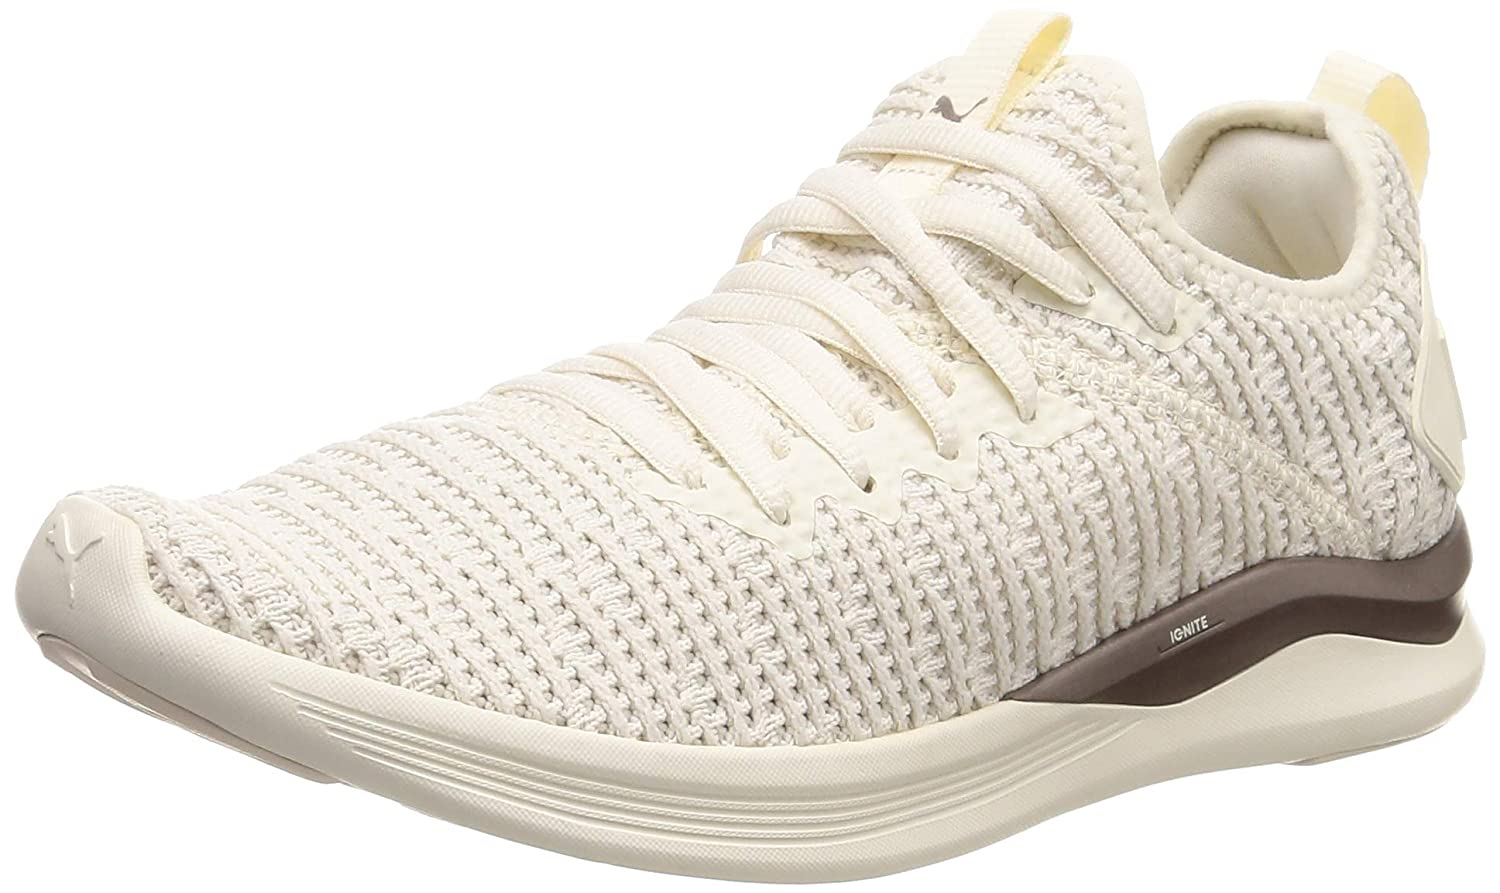 9761acd0f9 Puma Women's Ignite Flash Luxe WN's Competition Running Shoes ...